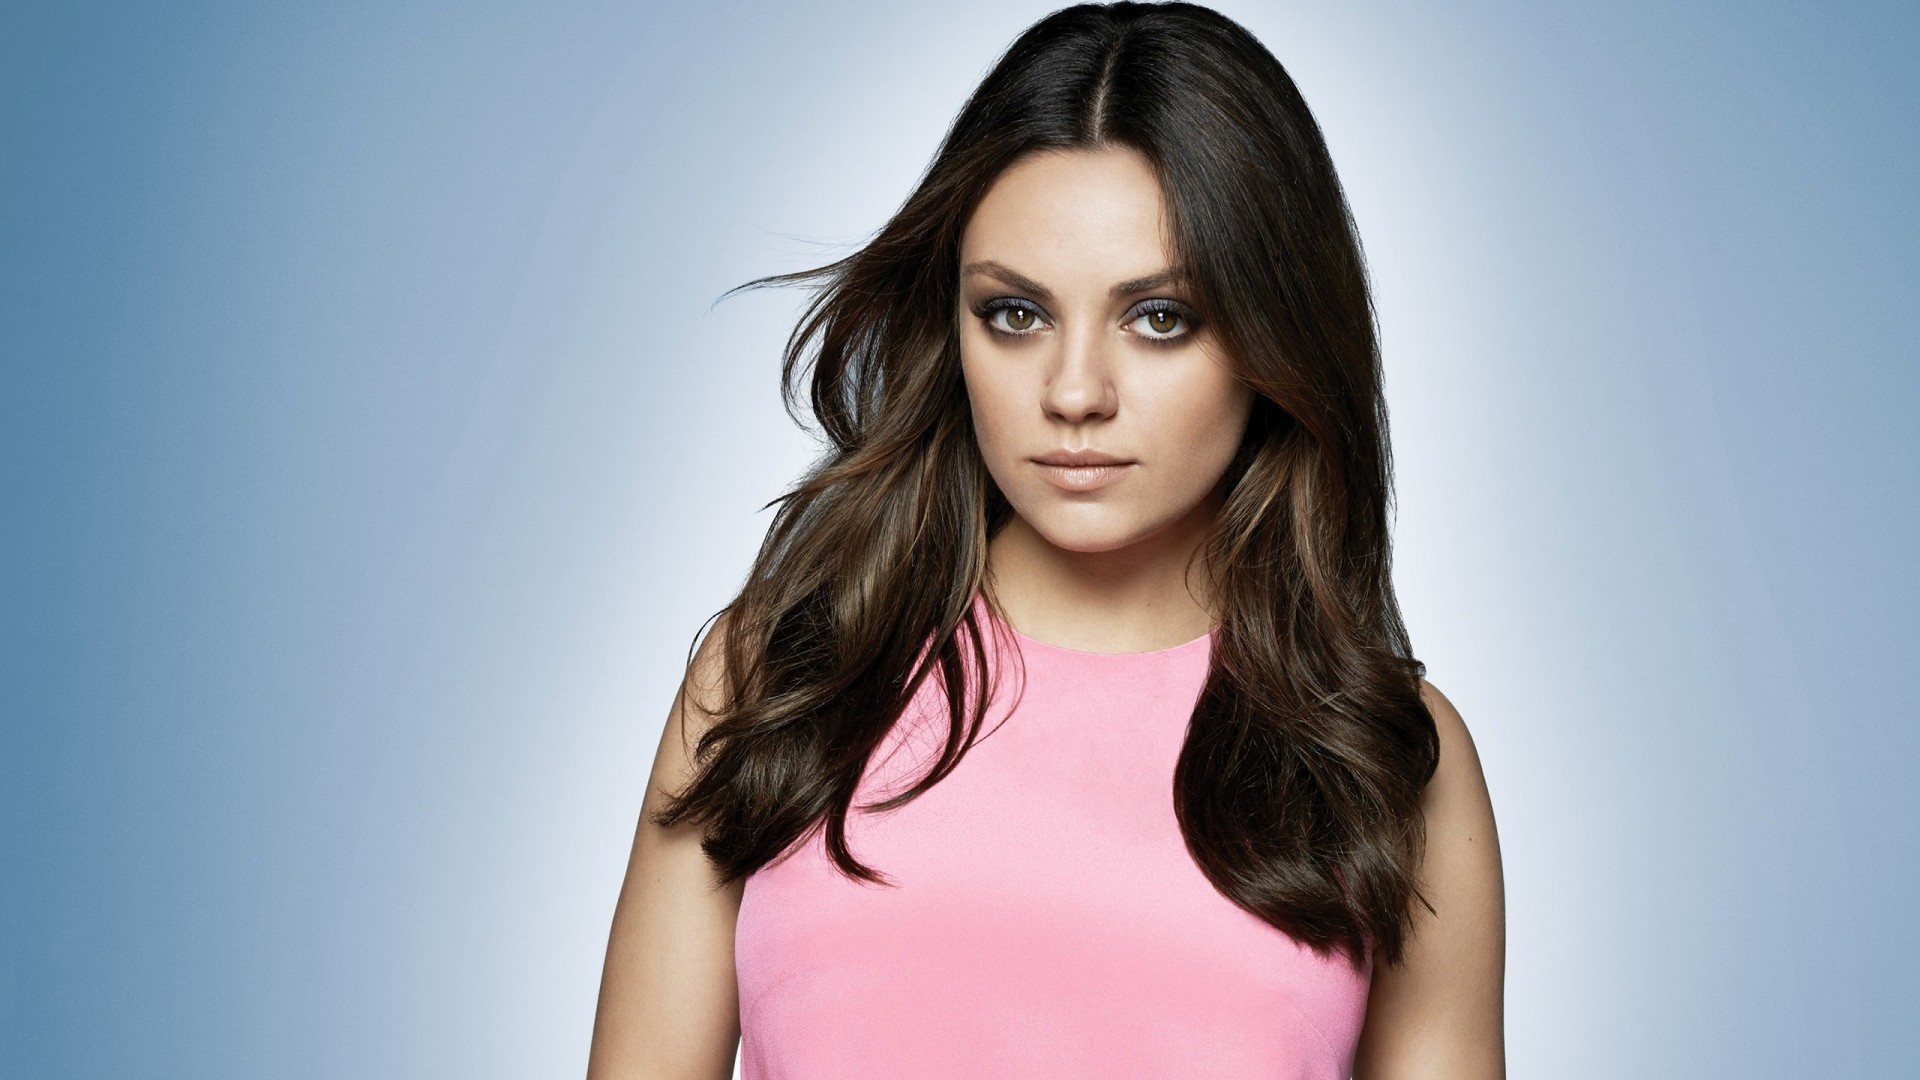 mila kunis wallpaper hd (82+ pictures)